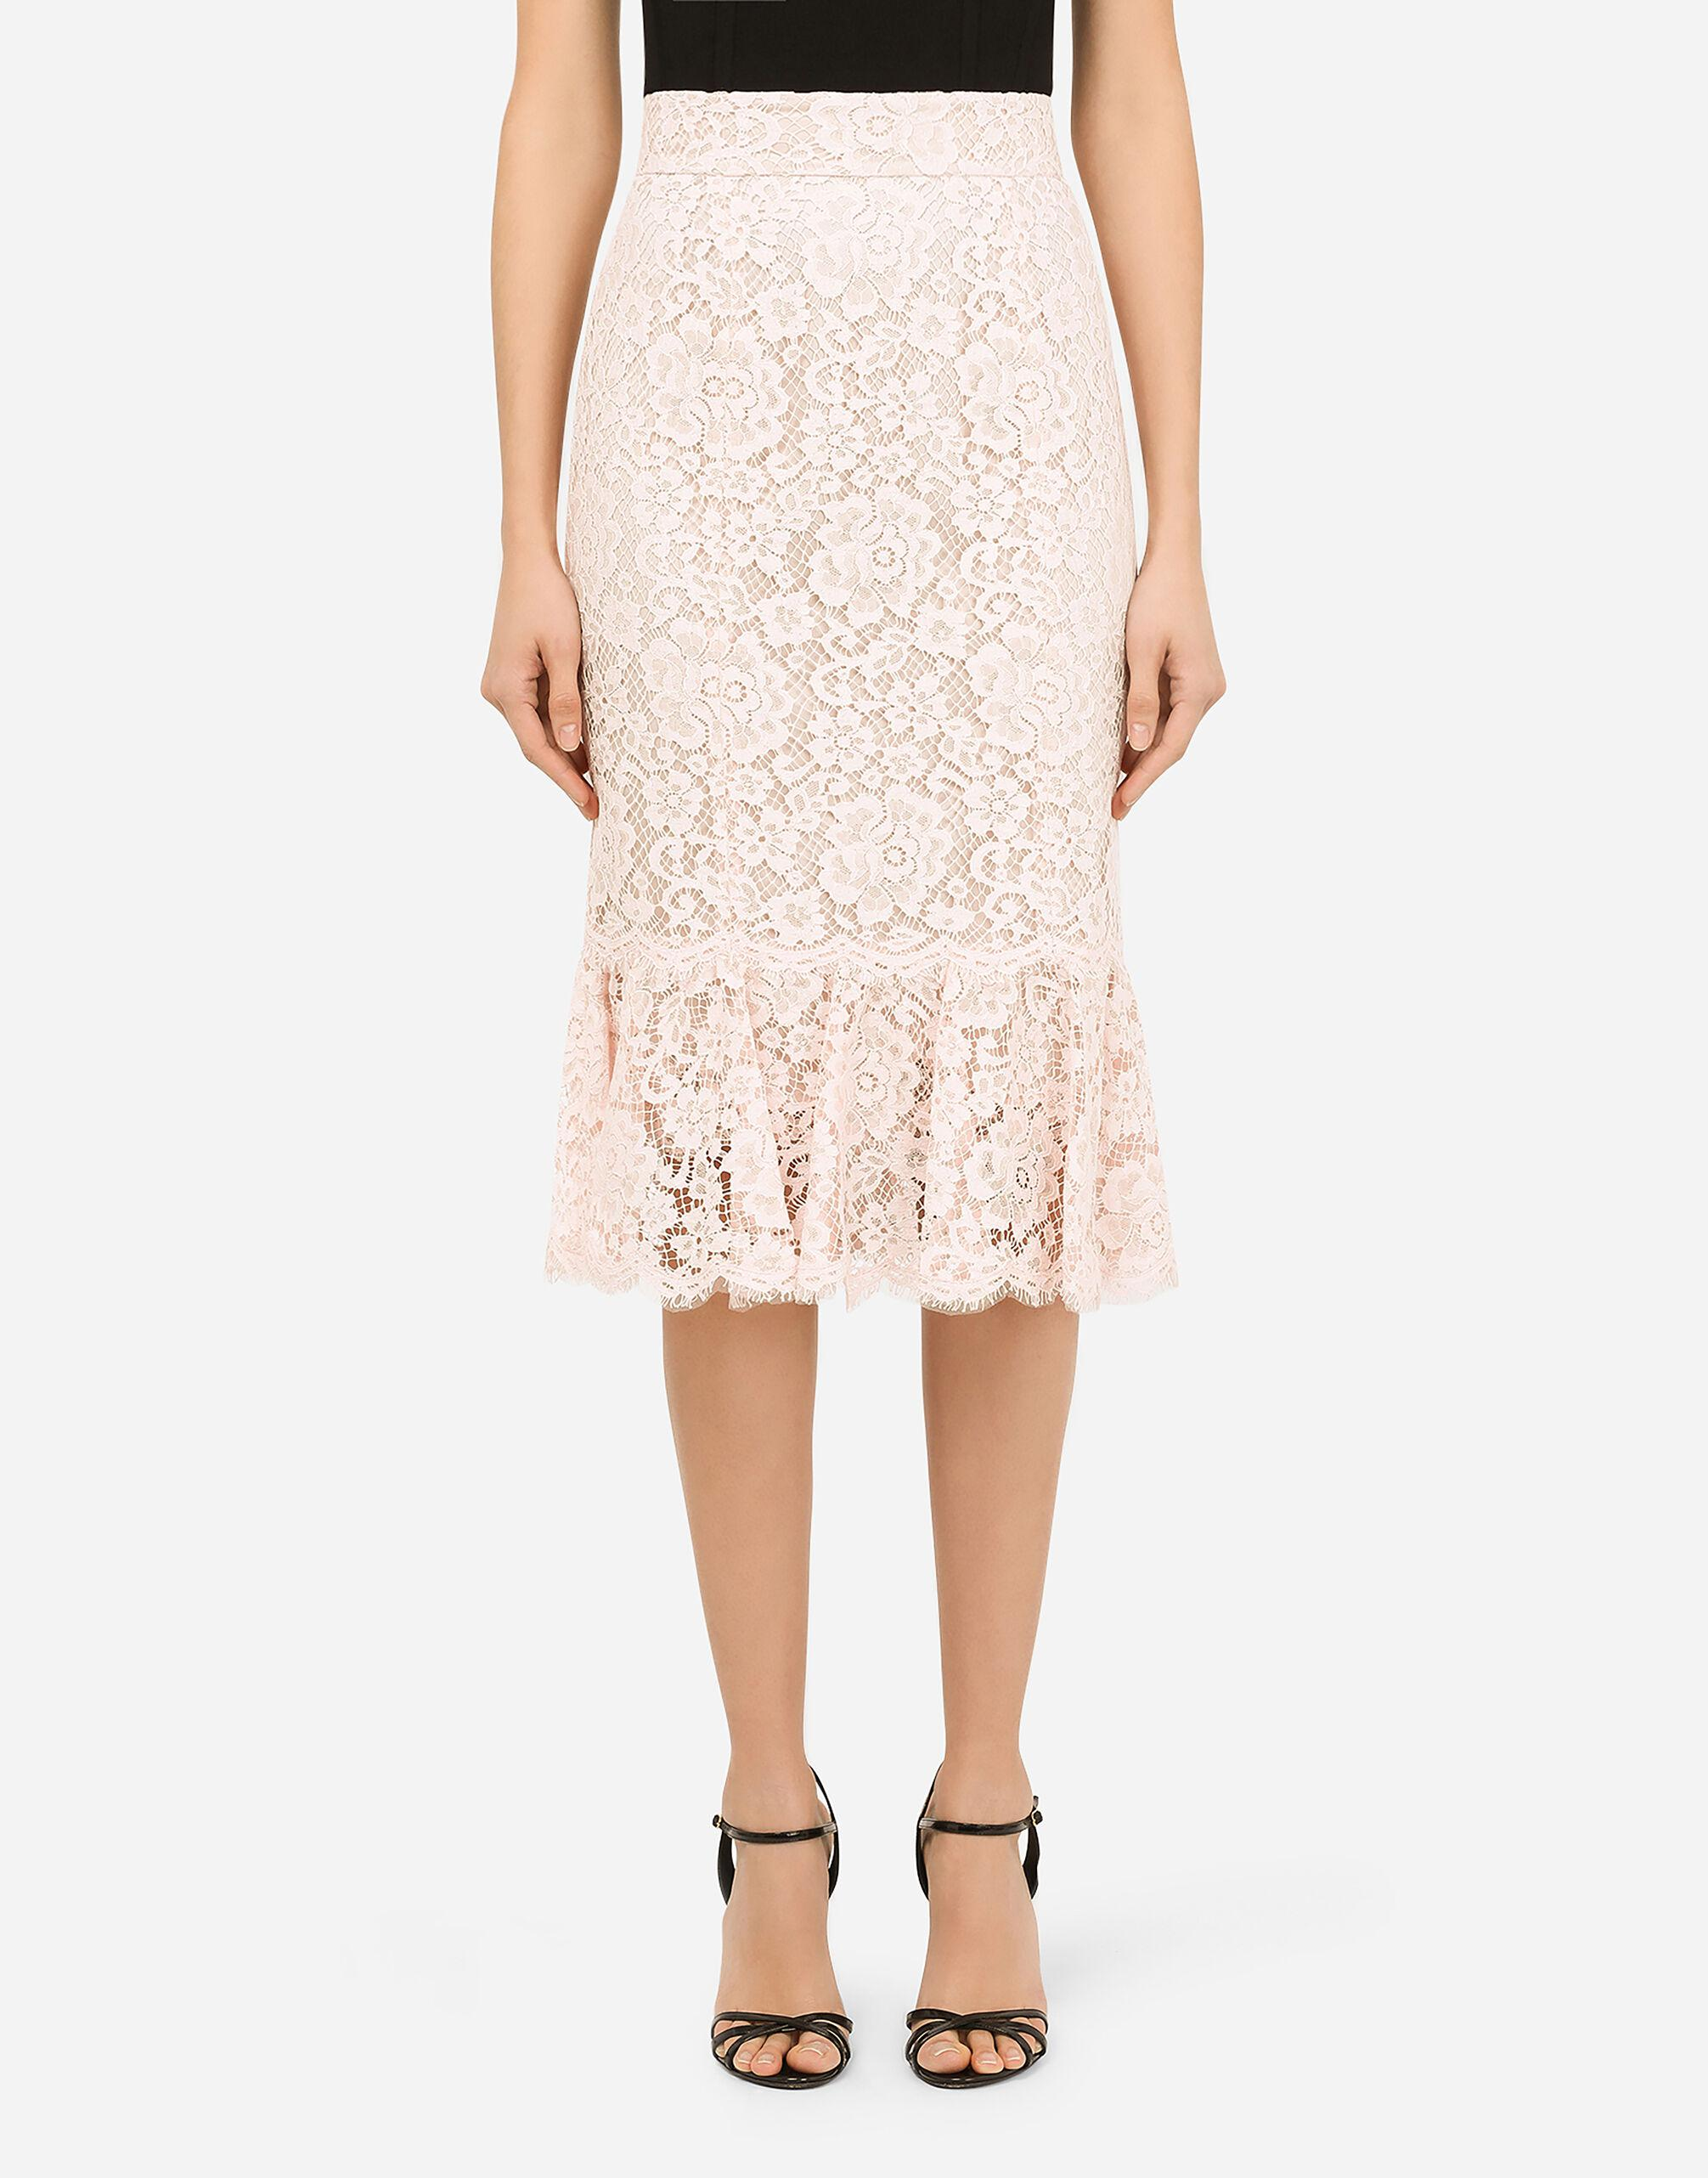 Lace midi skirt with ruffle detailing